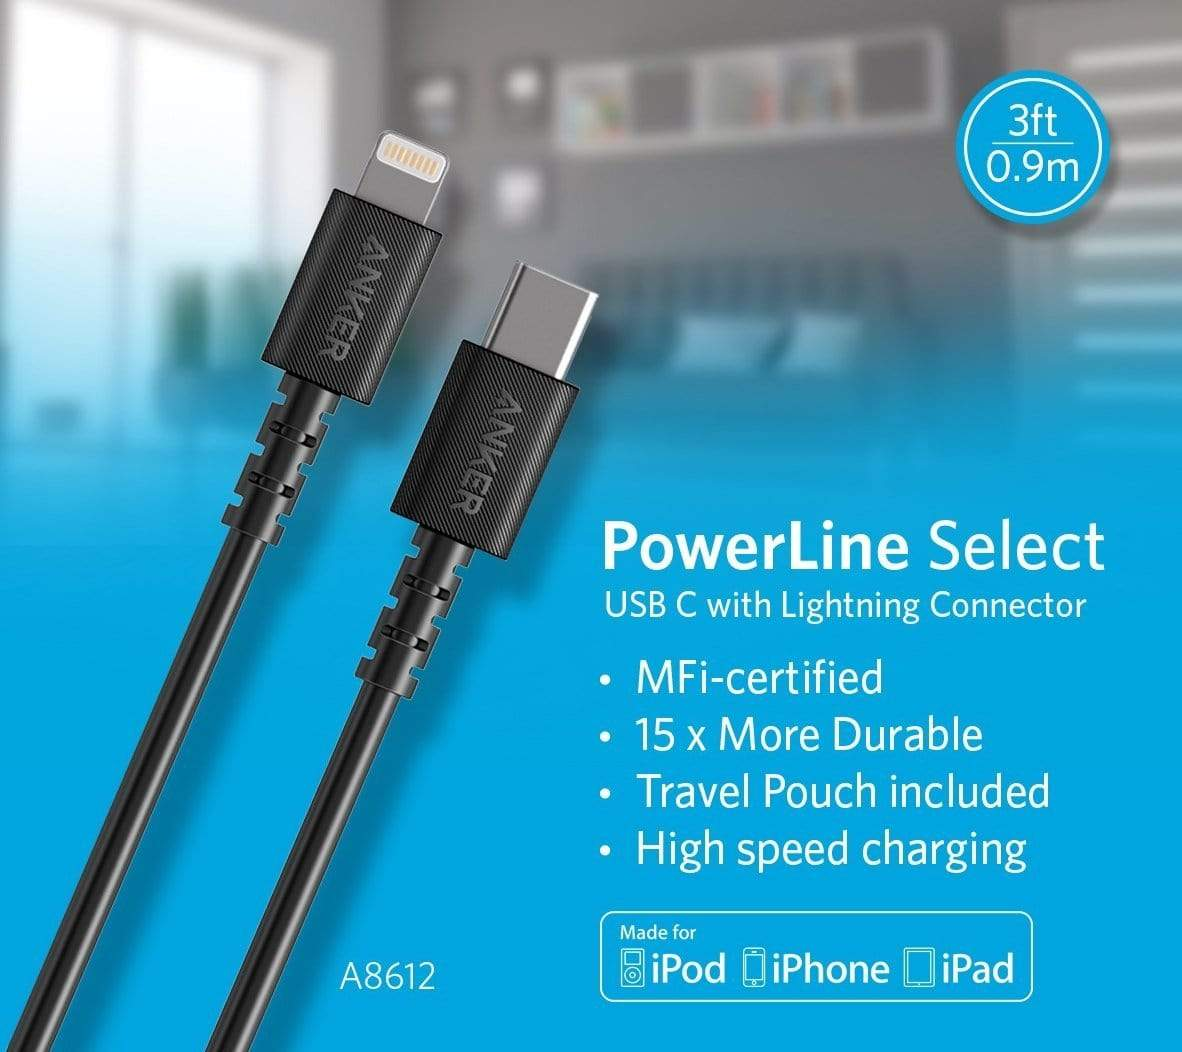 ANKER POWERLINE SELECT USB-C CABLE WITH LIGHTNING CONNECTOR